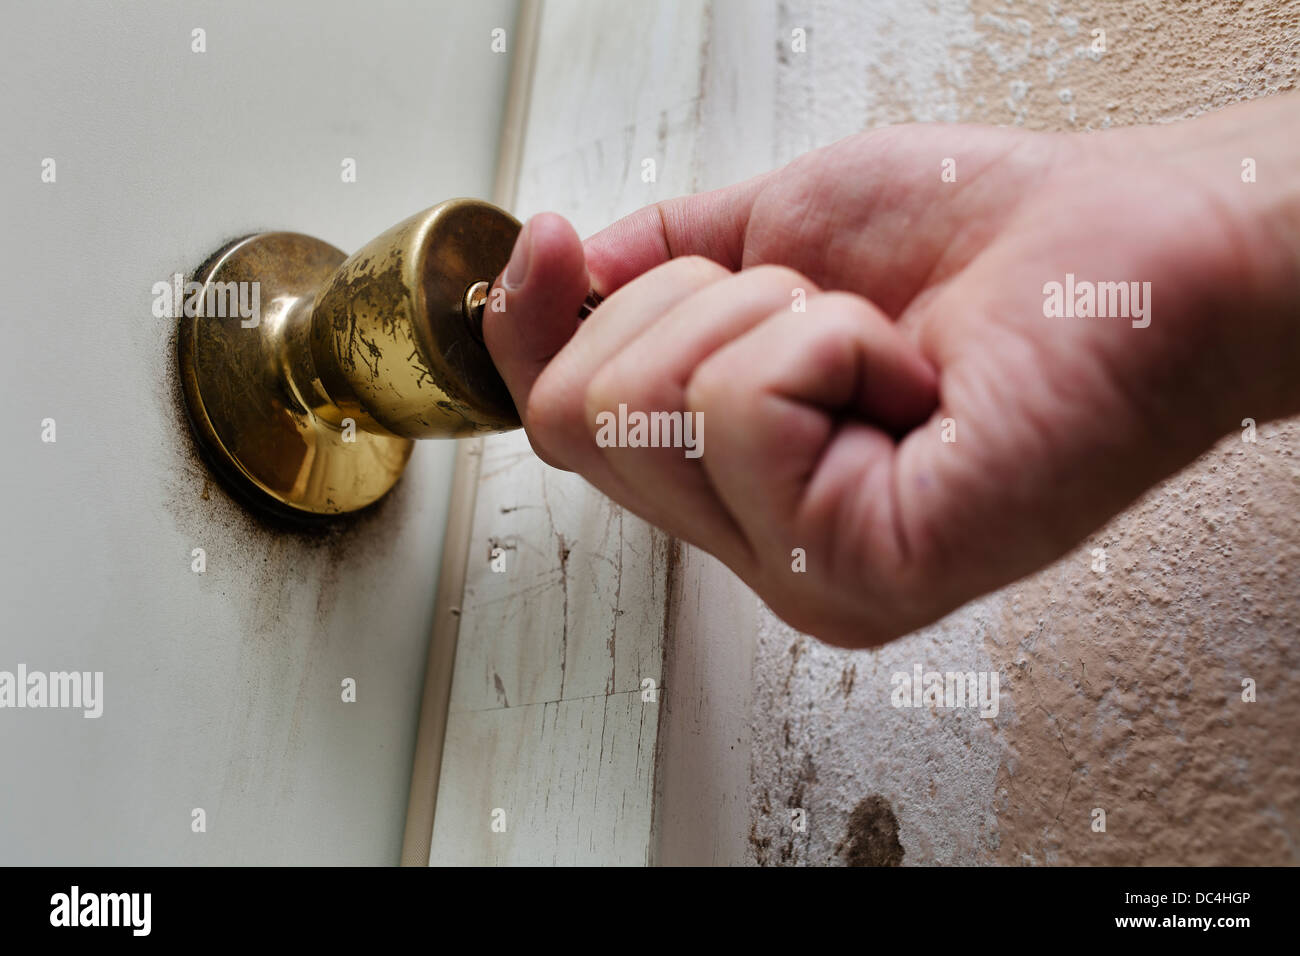 Unlocking or locking a door. & Unlocking or locking a door Stock Photo: 59108582 - Alamy